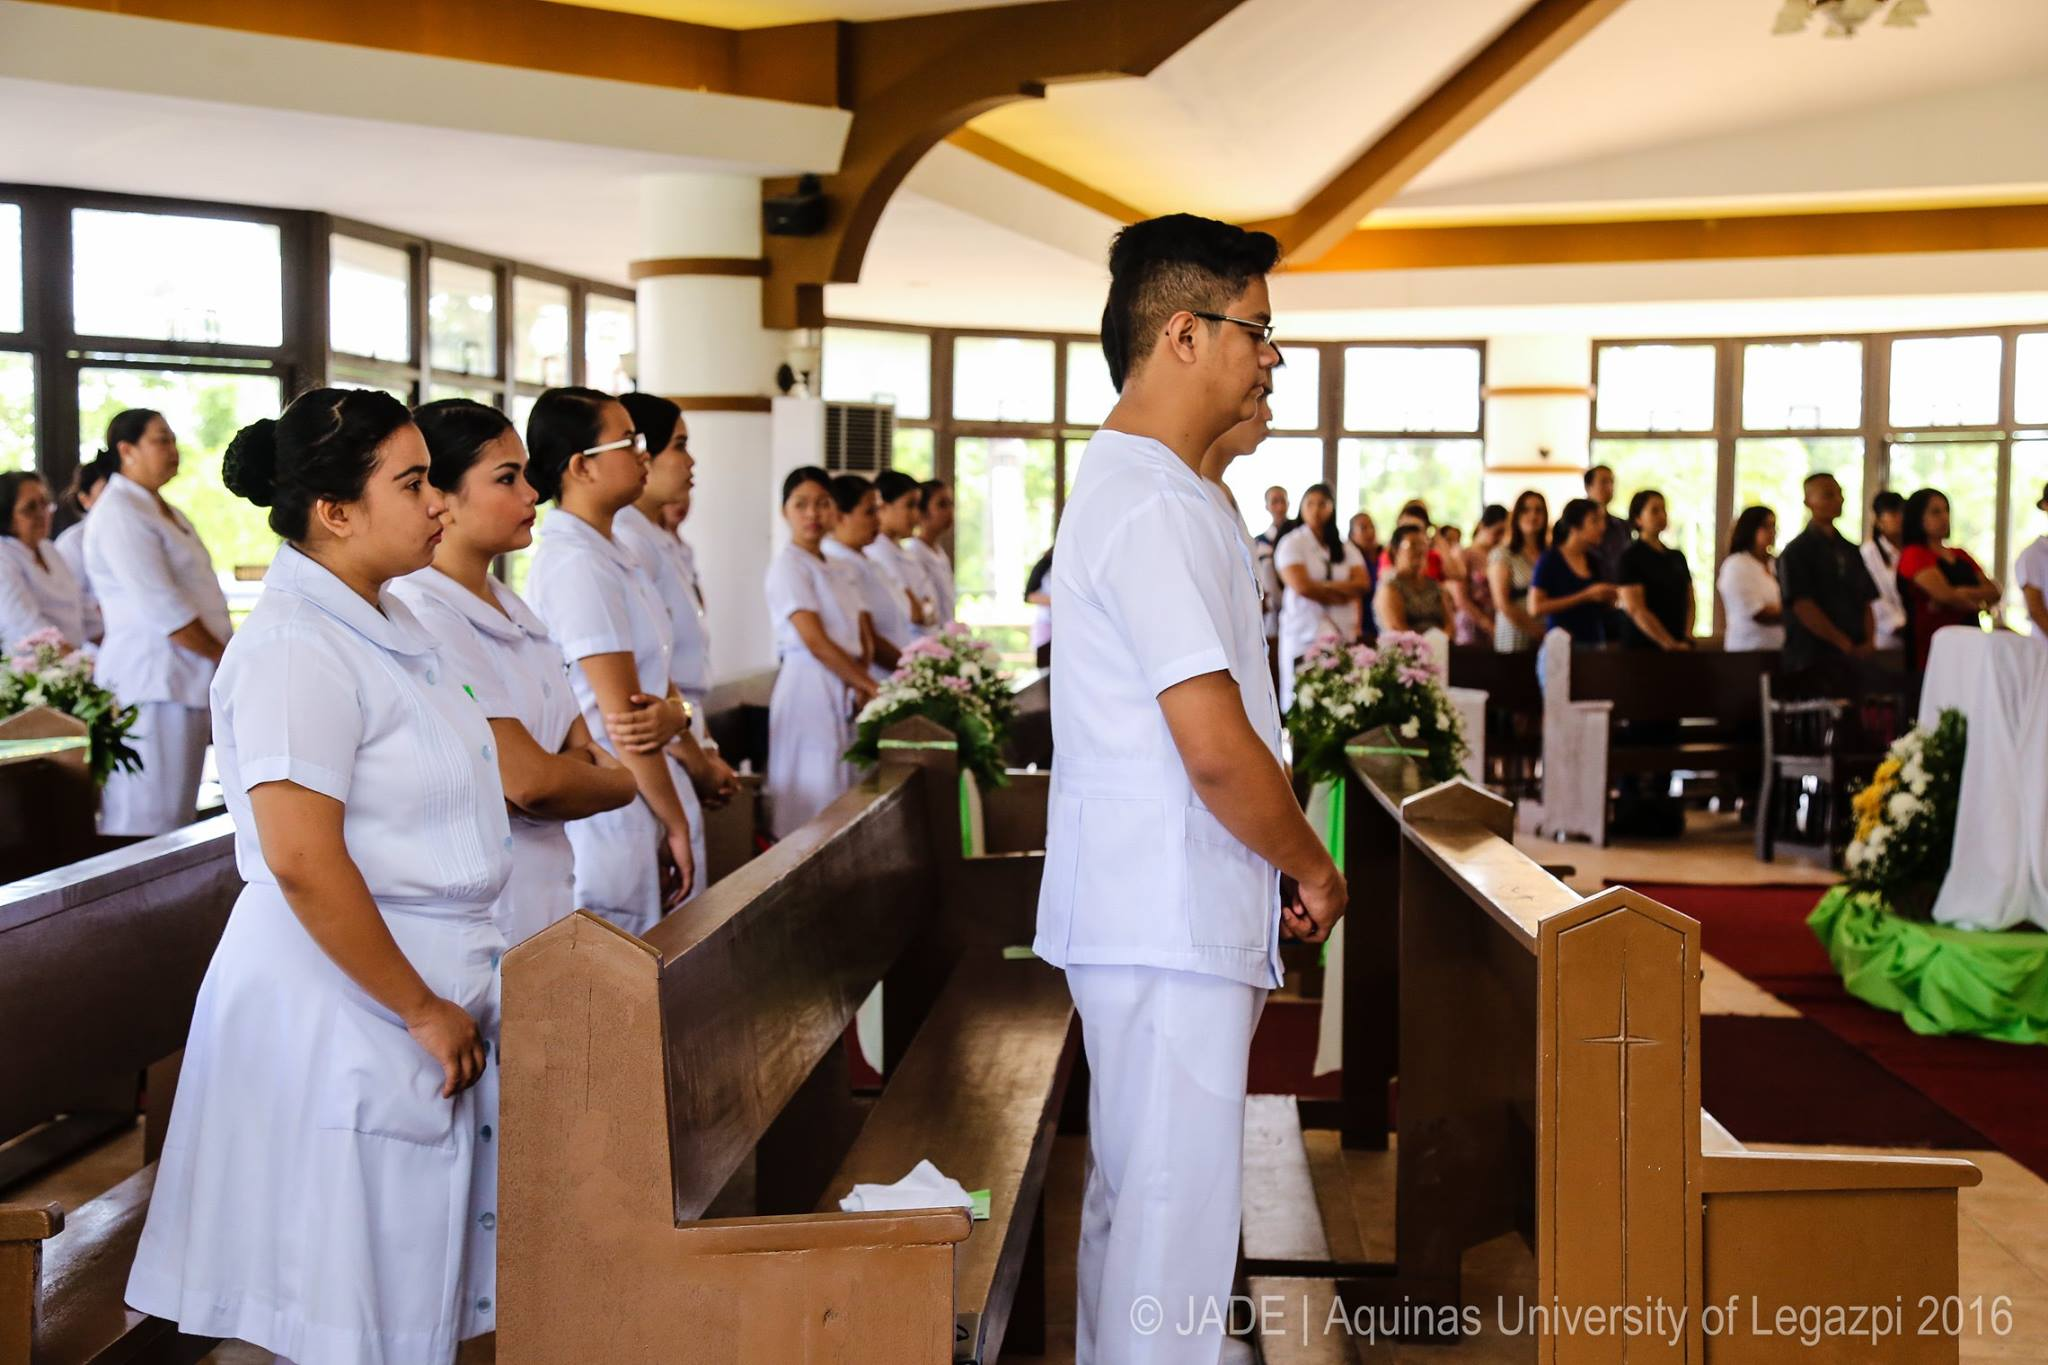 46th Capping, Pinning and Candlelighting Ceremony